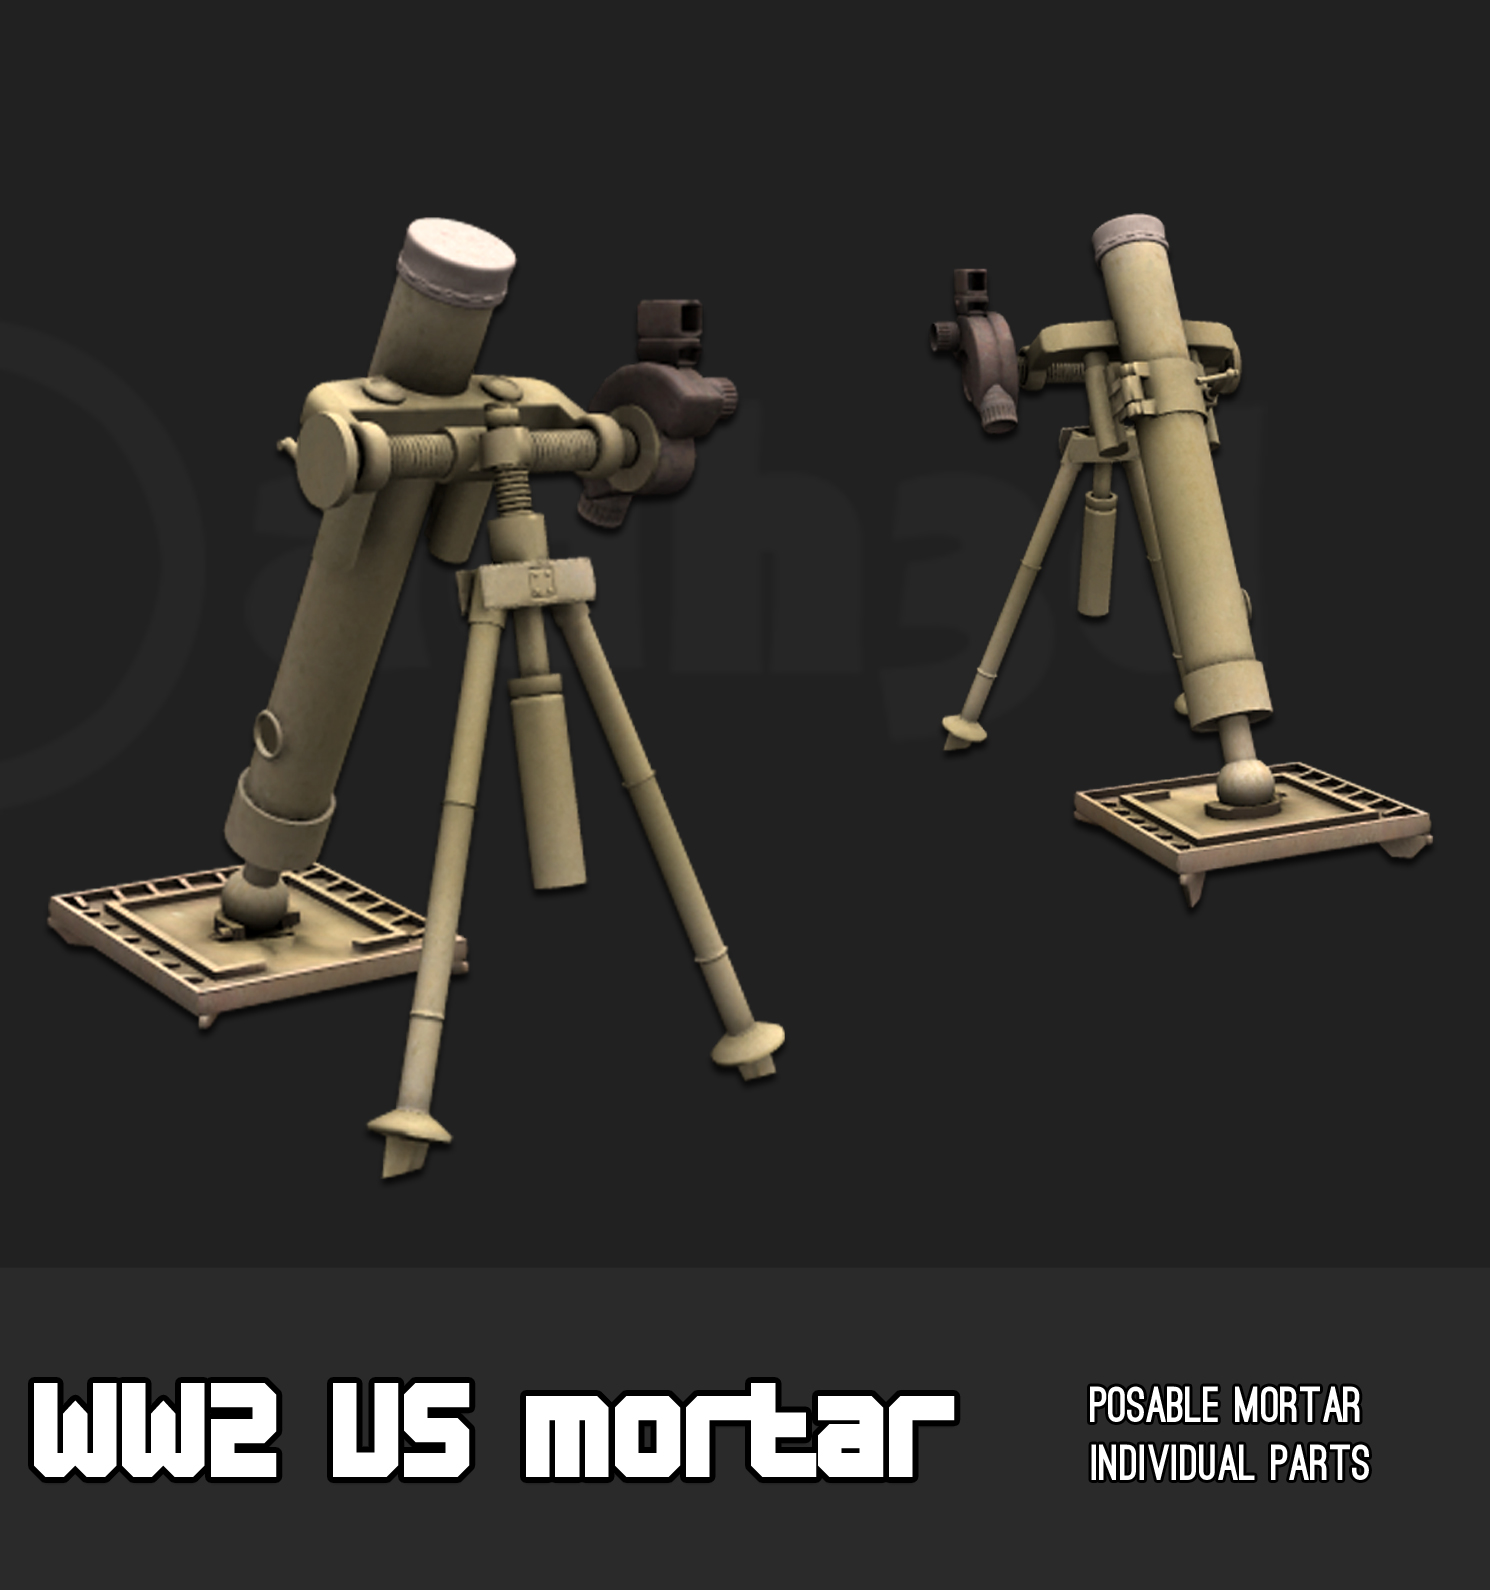 WW2 US mortar